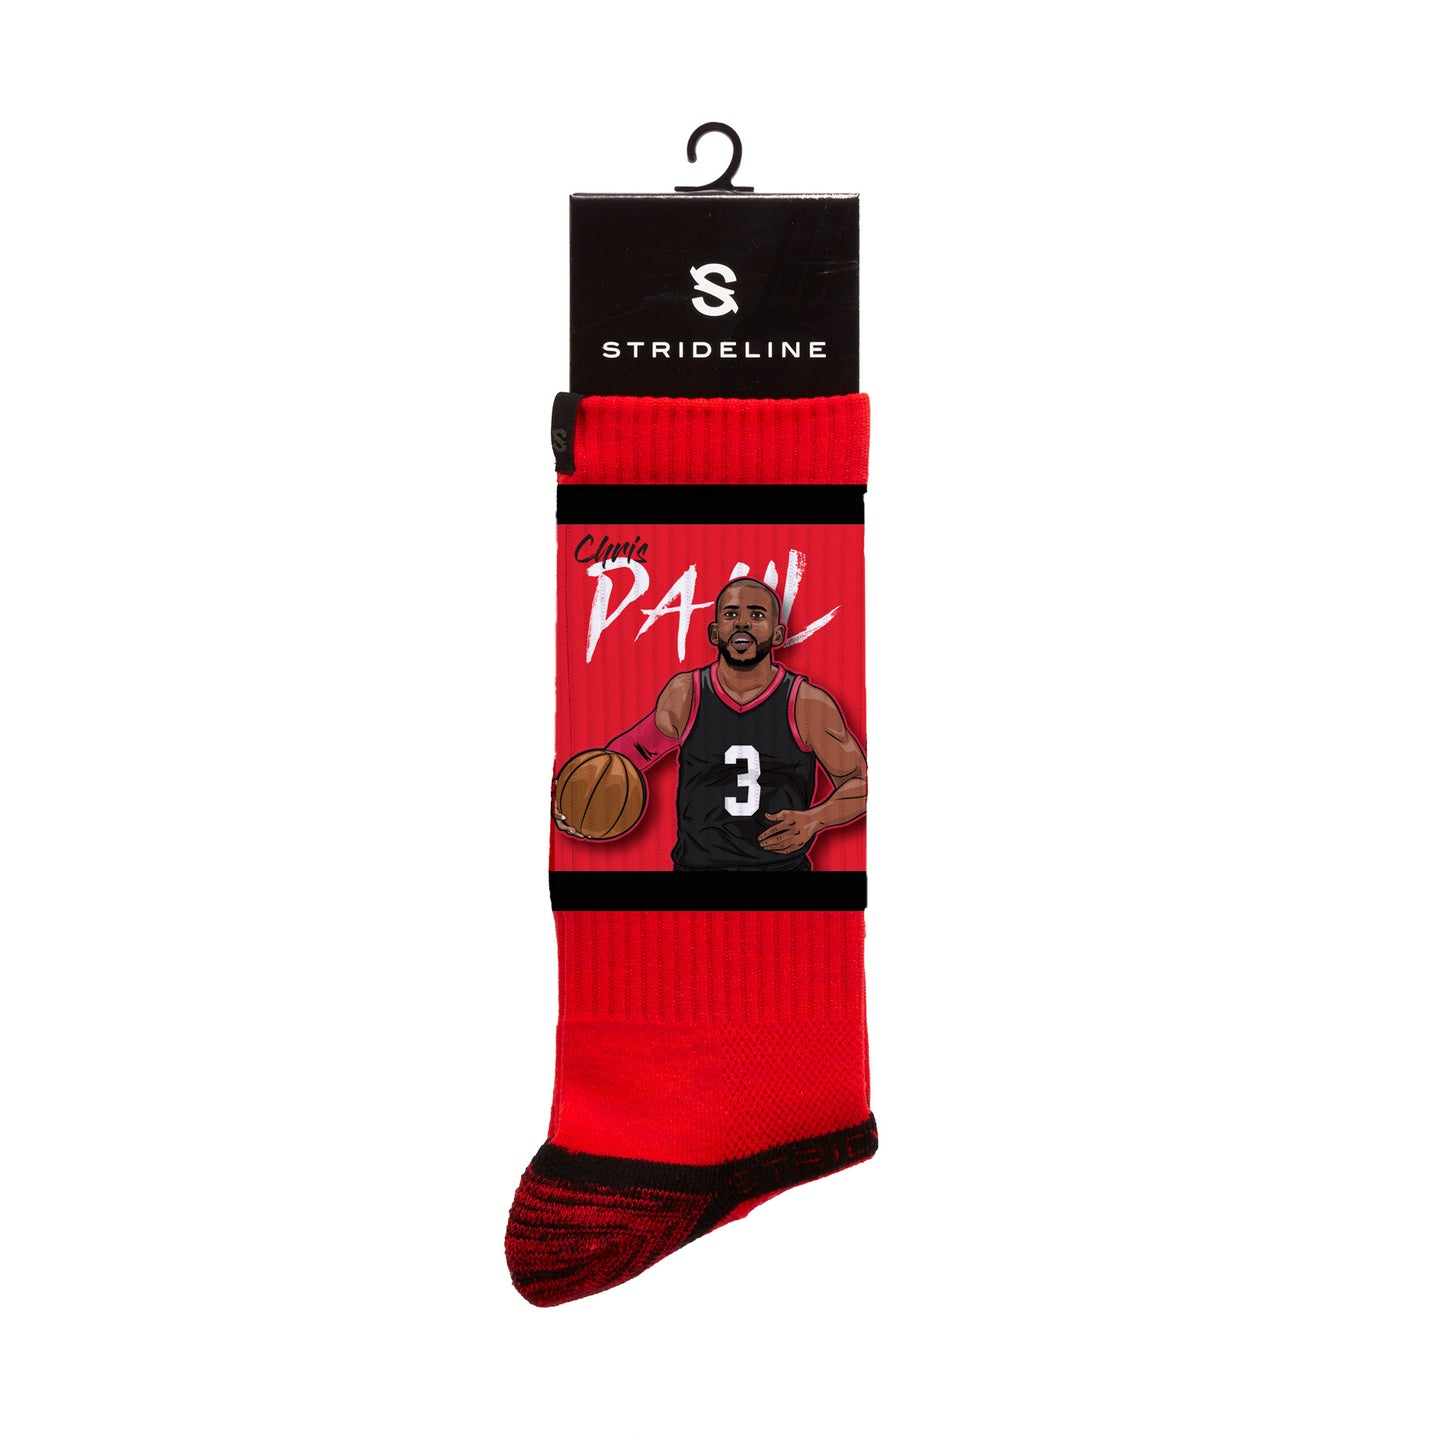 Chris Paul PG Red Crew Socks